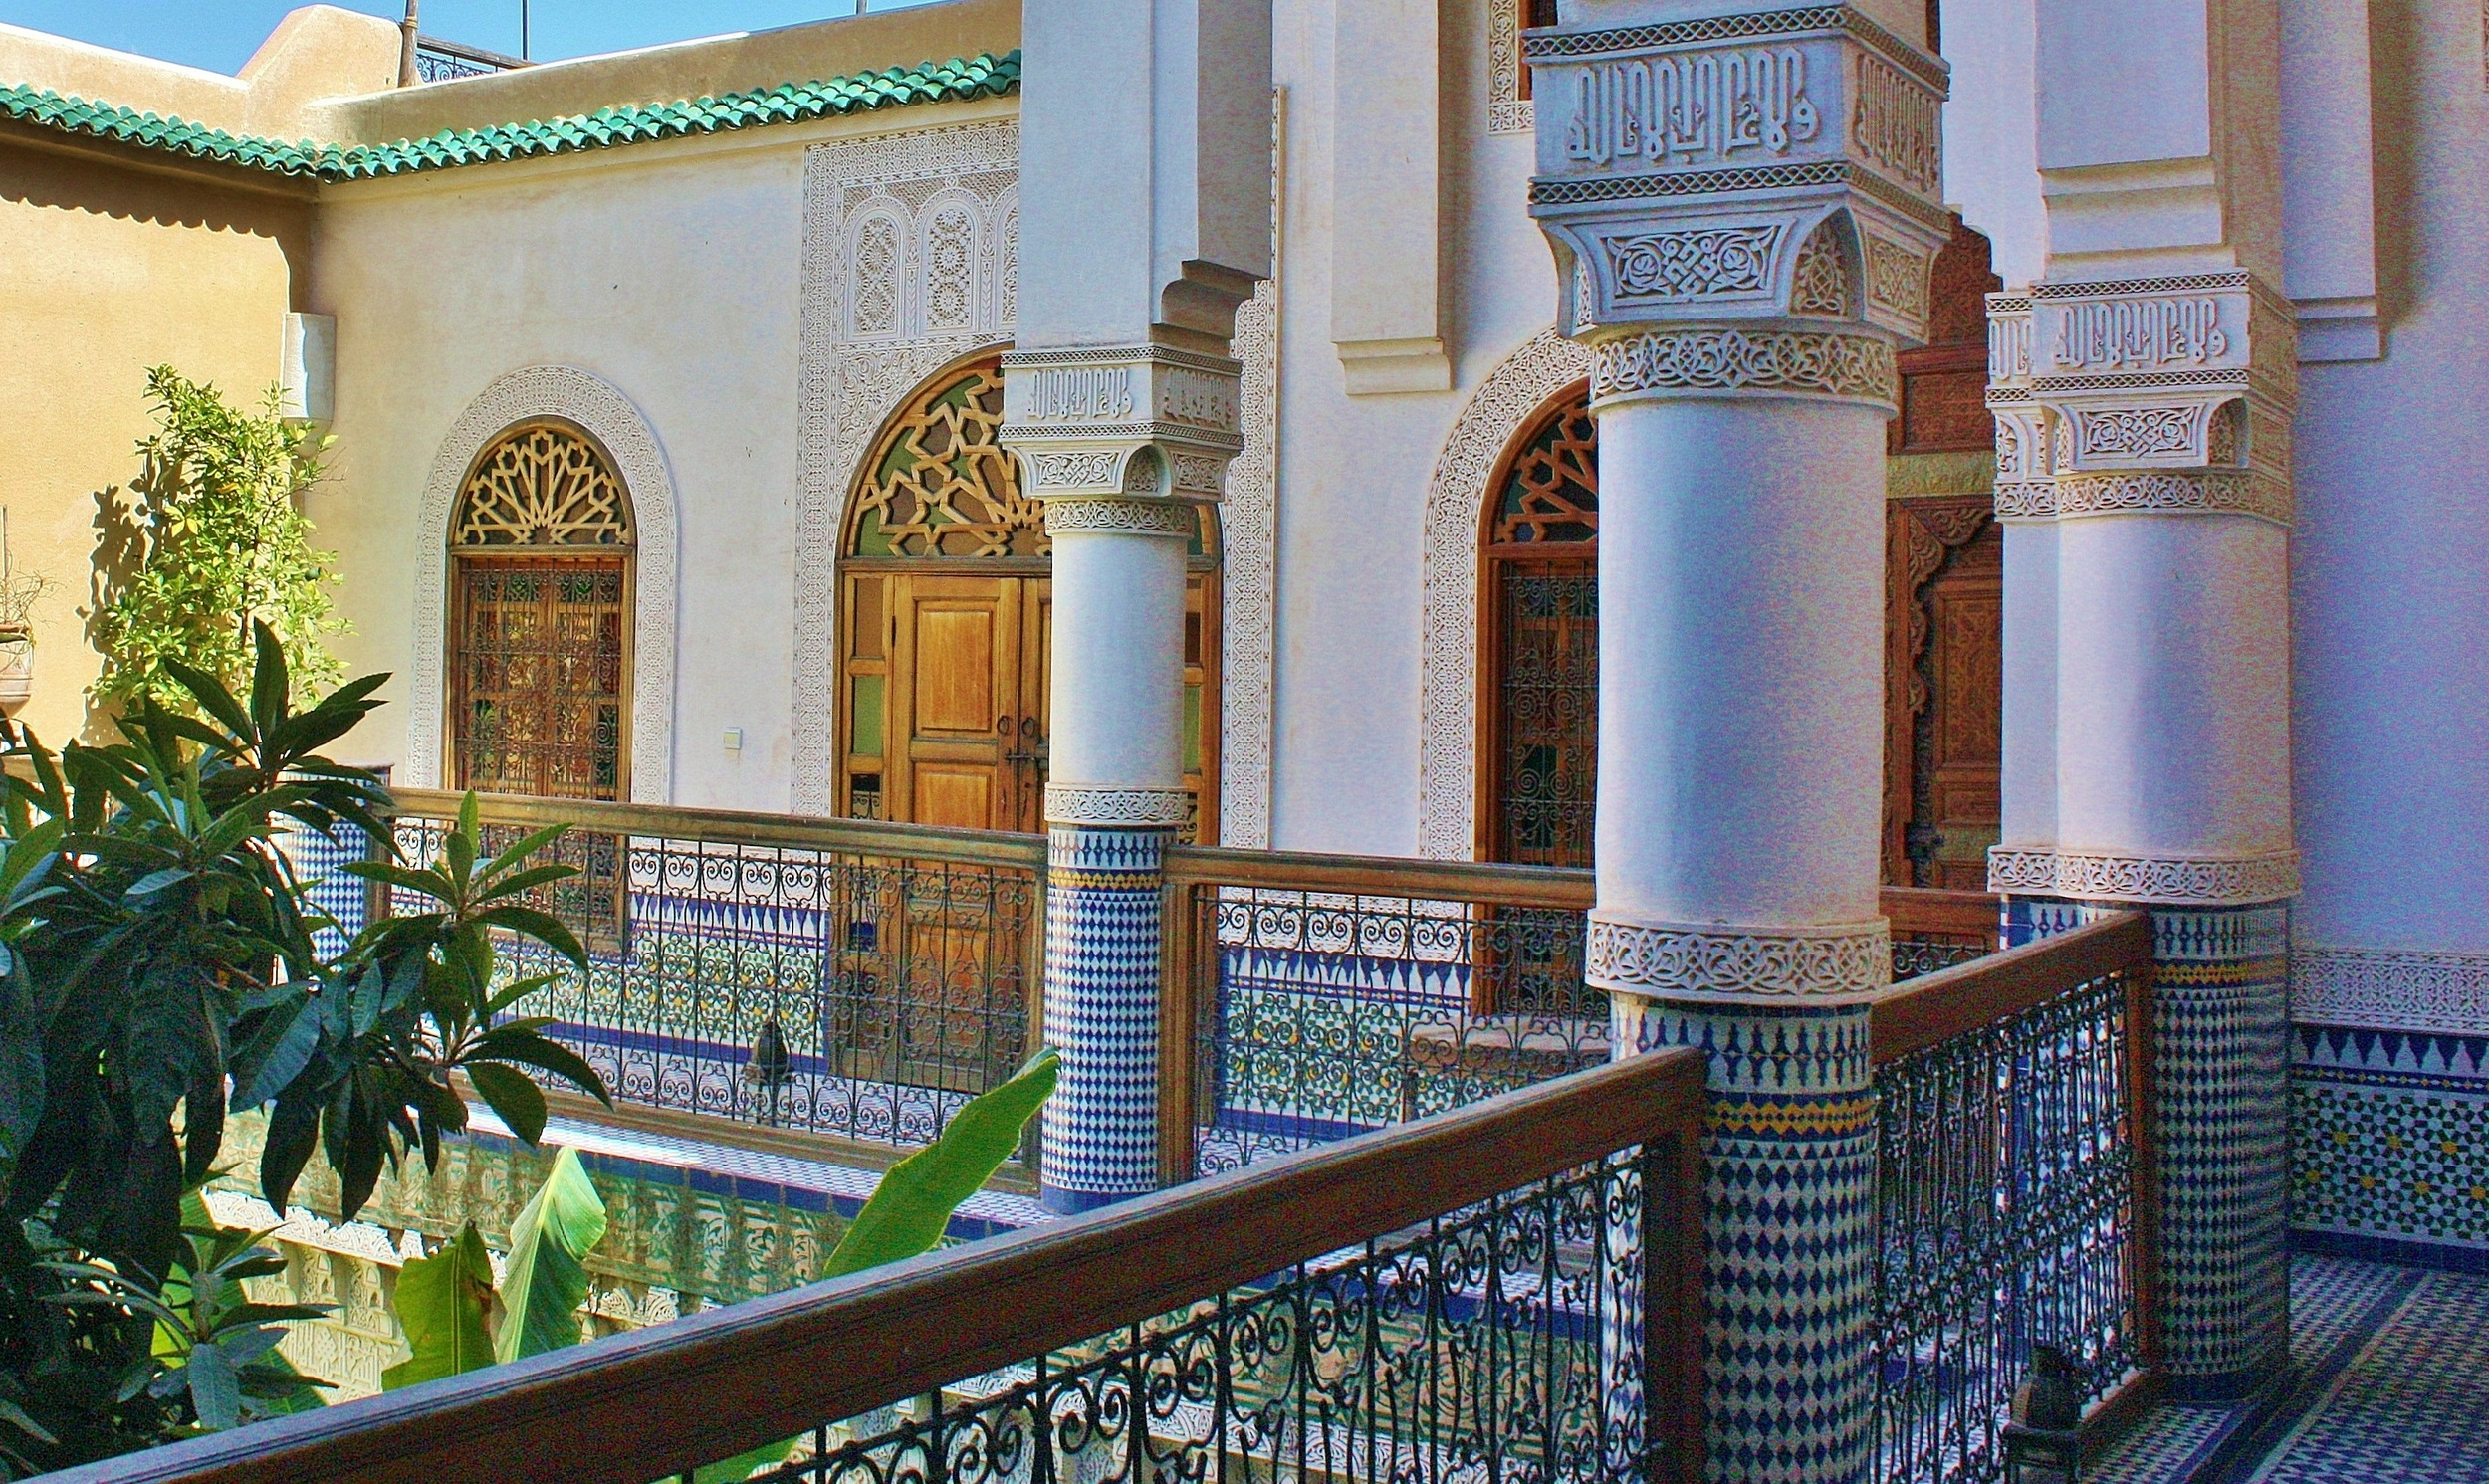 Upper balcony of a riad in the old city of Fez, Morocco.